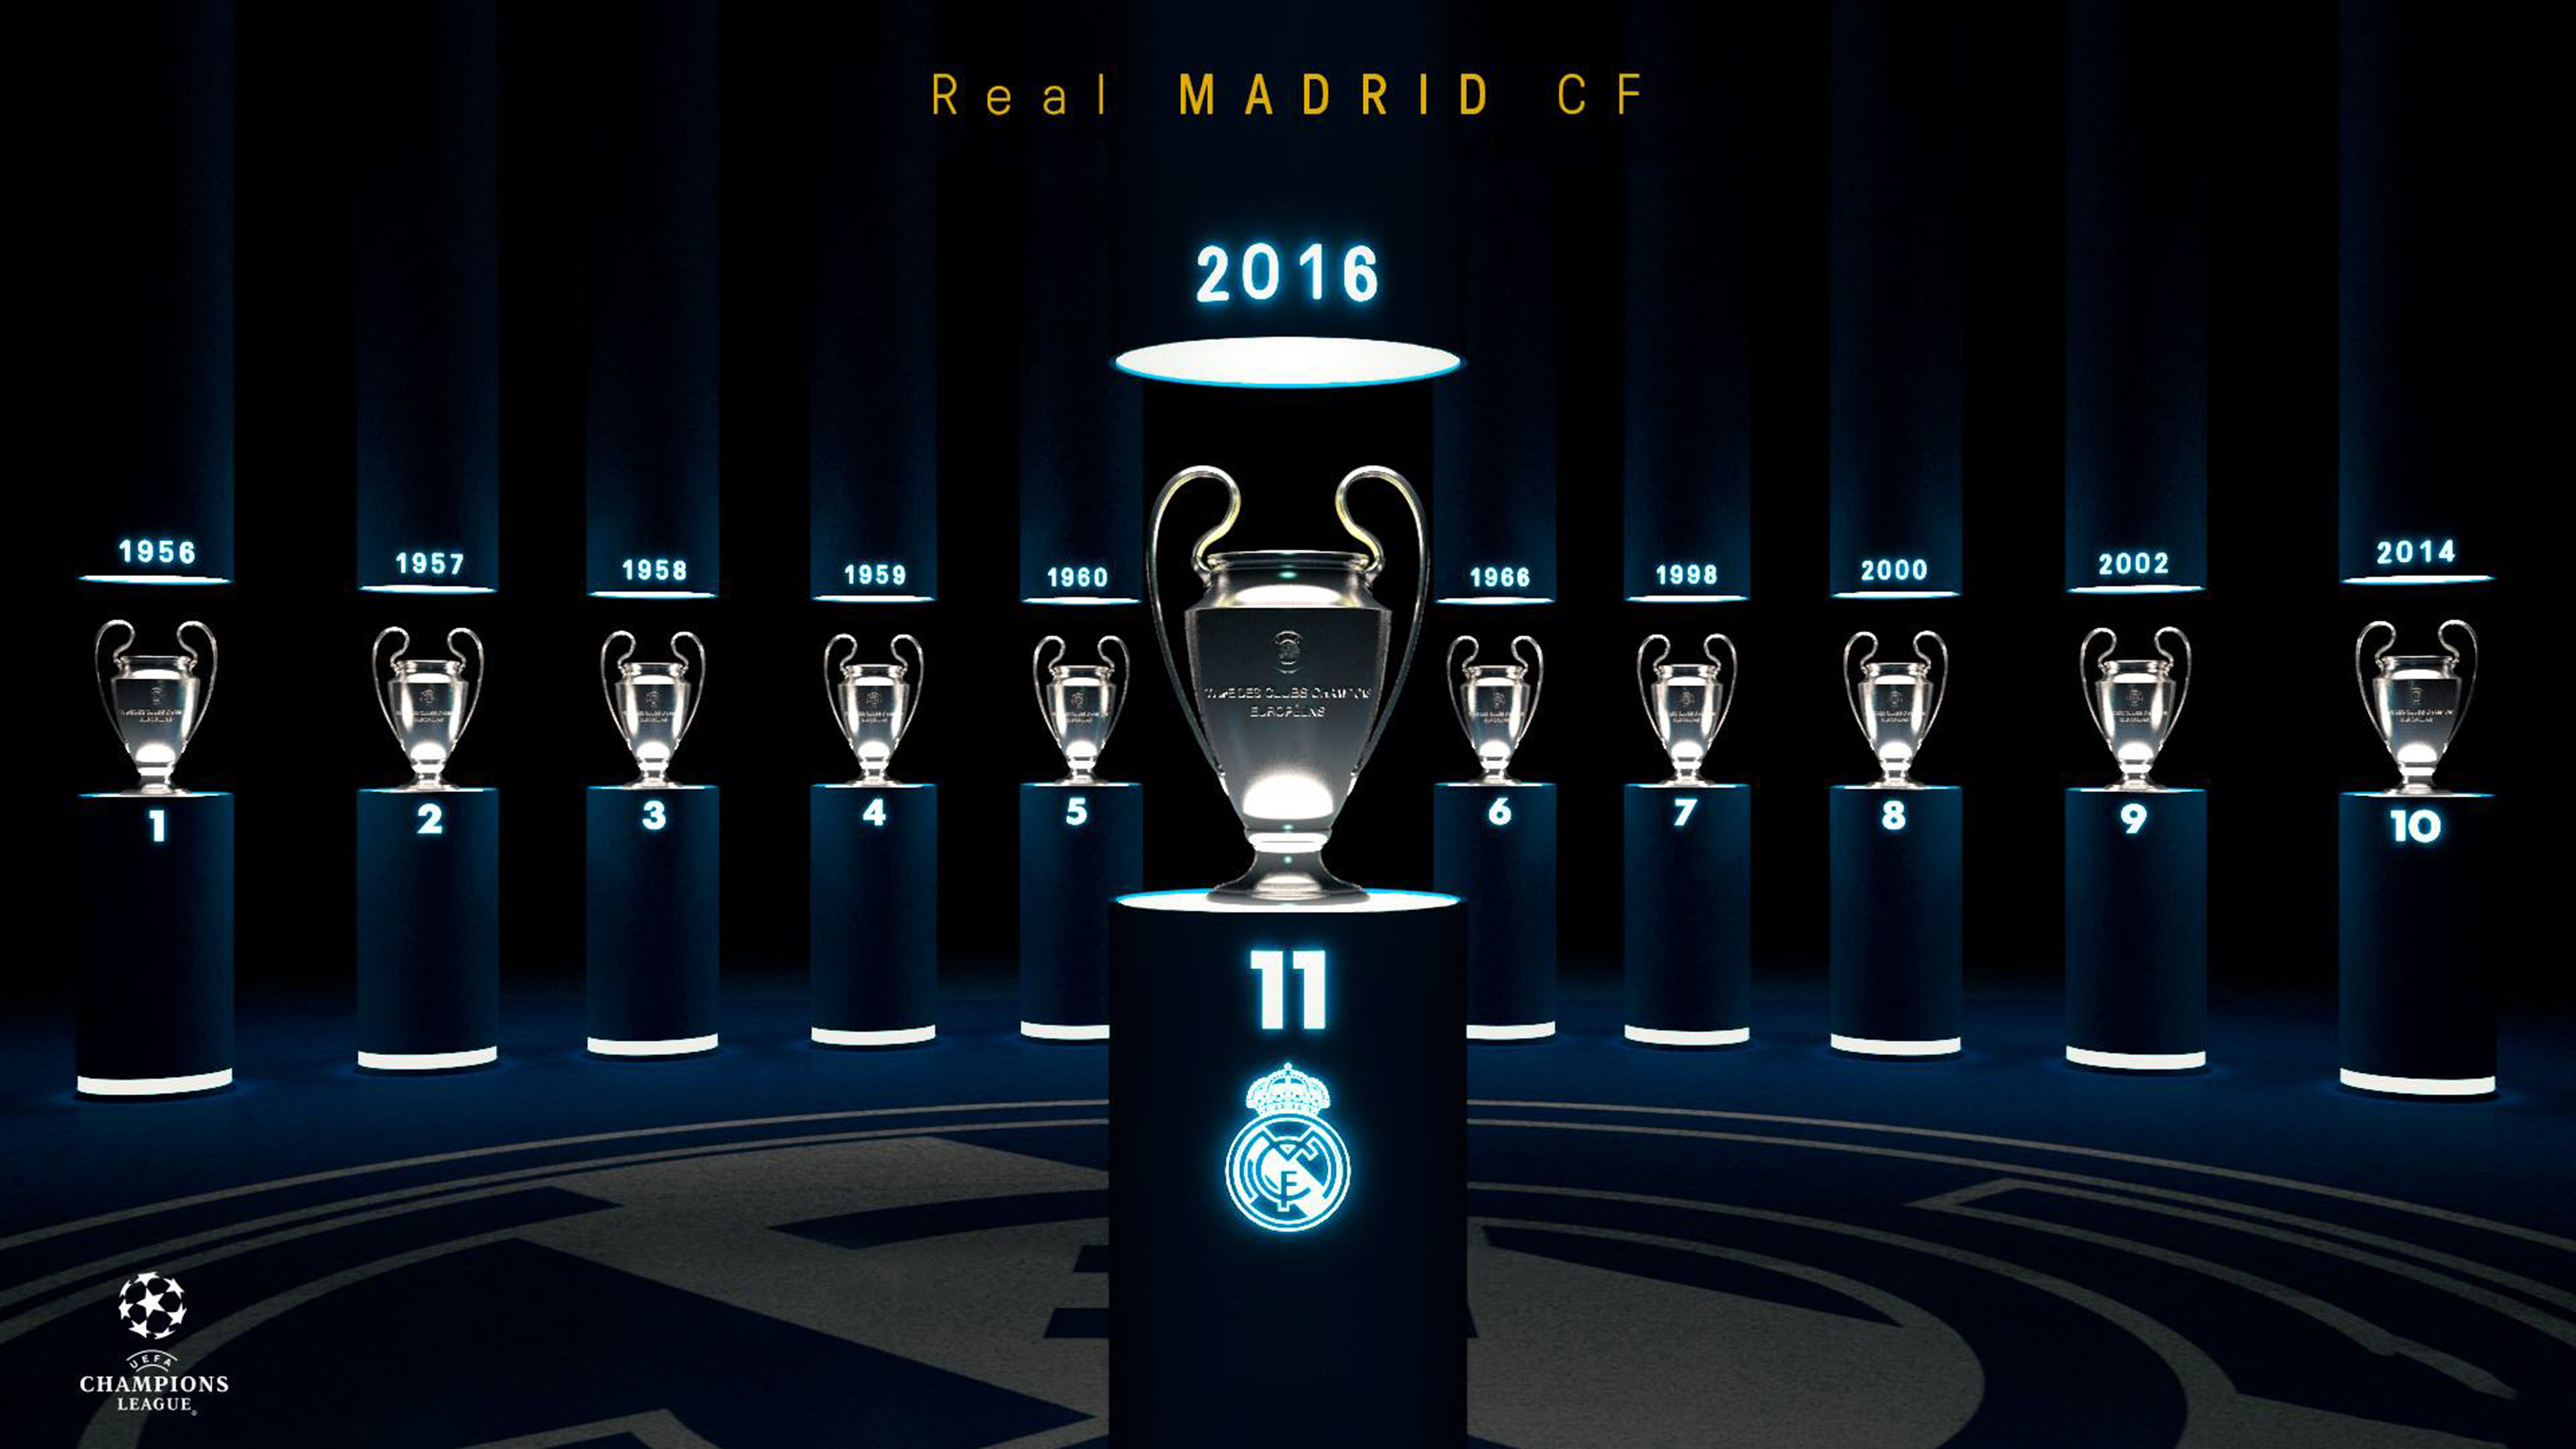 3840x2160 Wallpaper Real Madrid (78 Wallpapers)